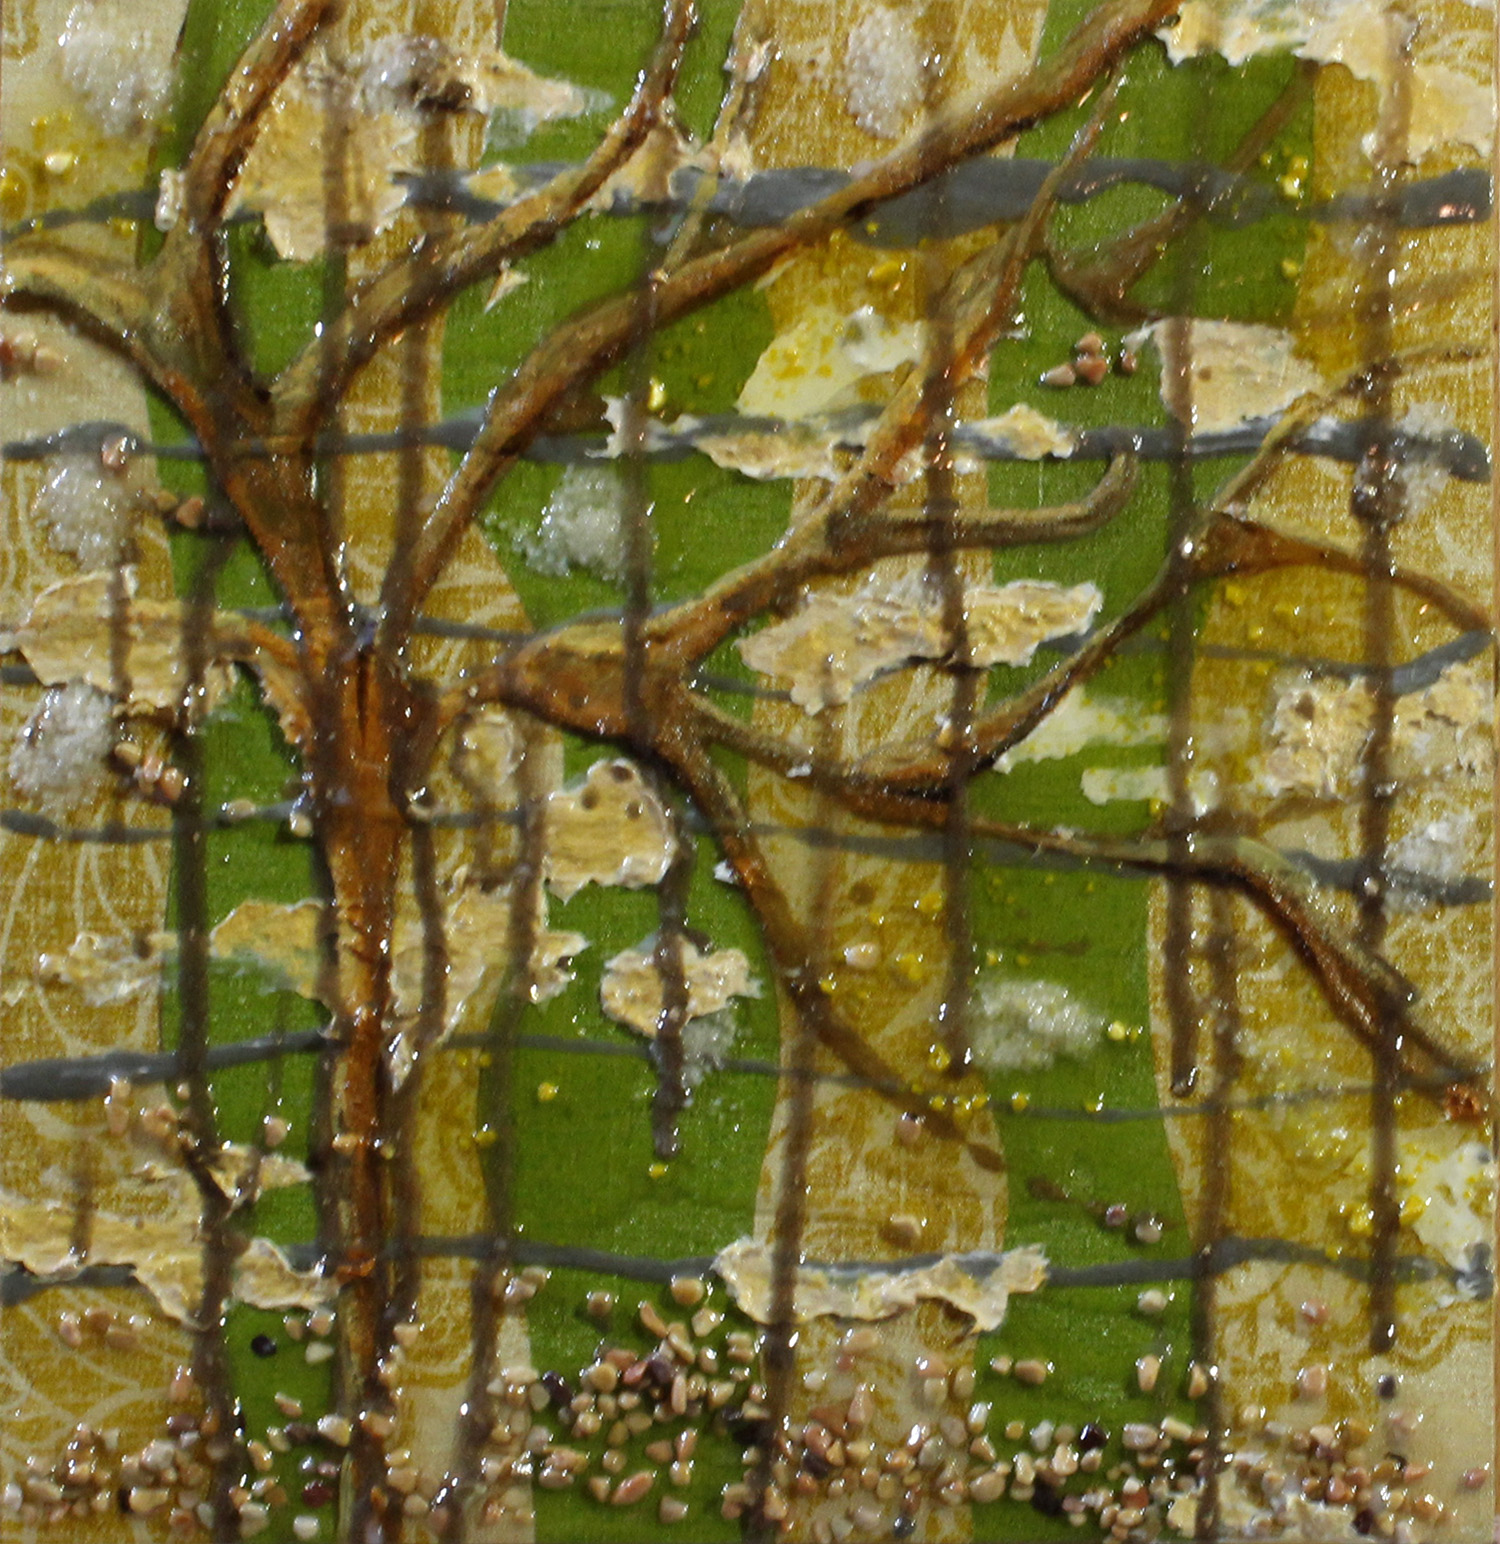 Mixed Media with small rocks, sand, wallpaper, resin, tree and earth